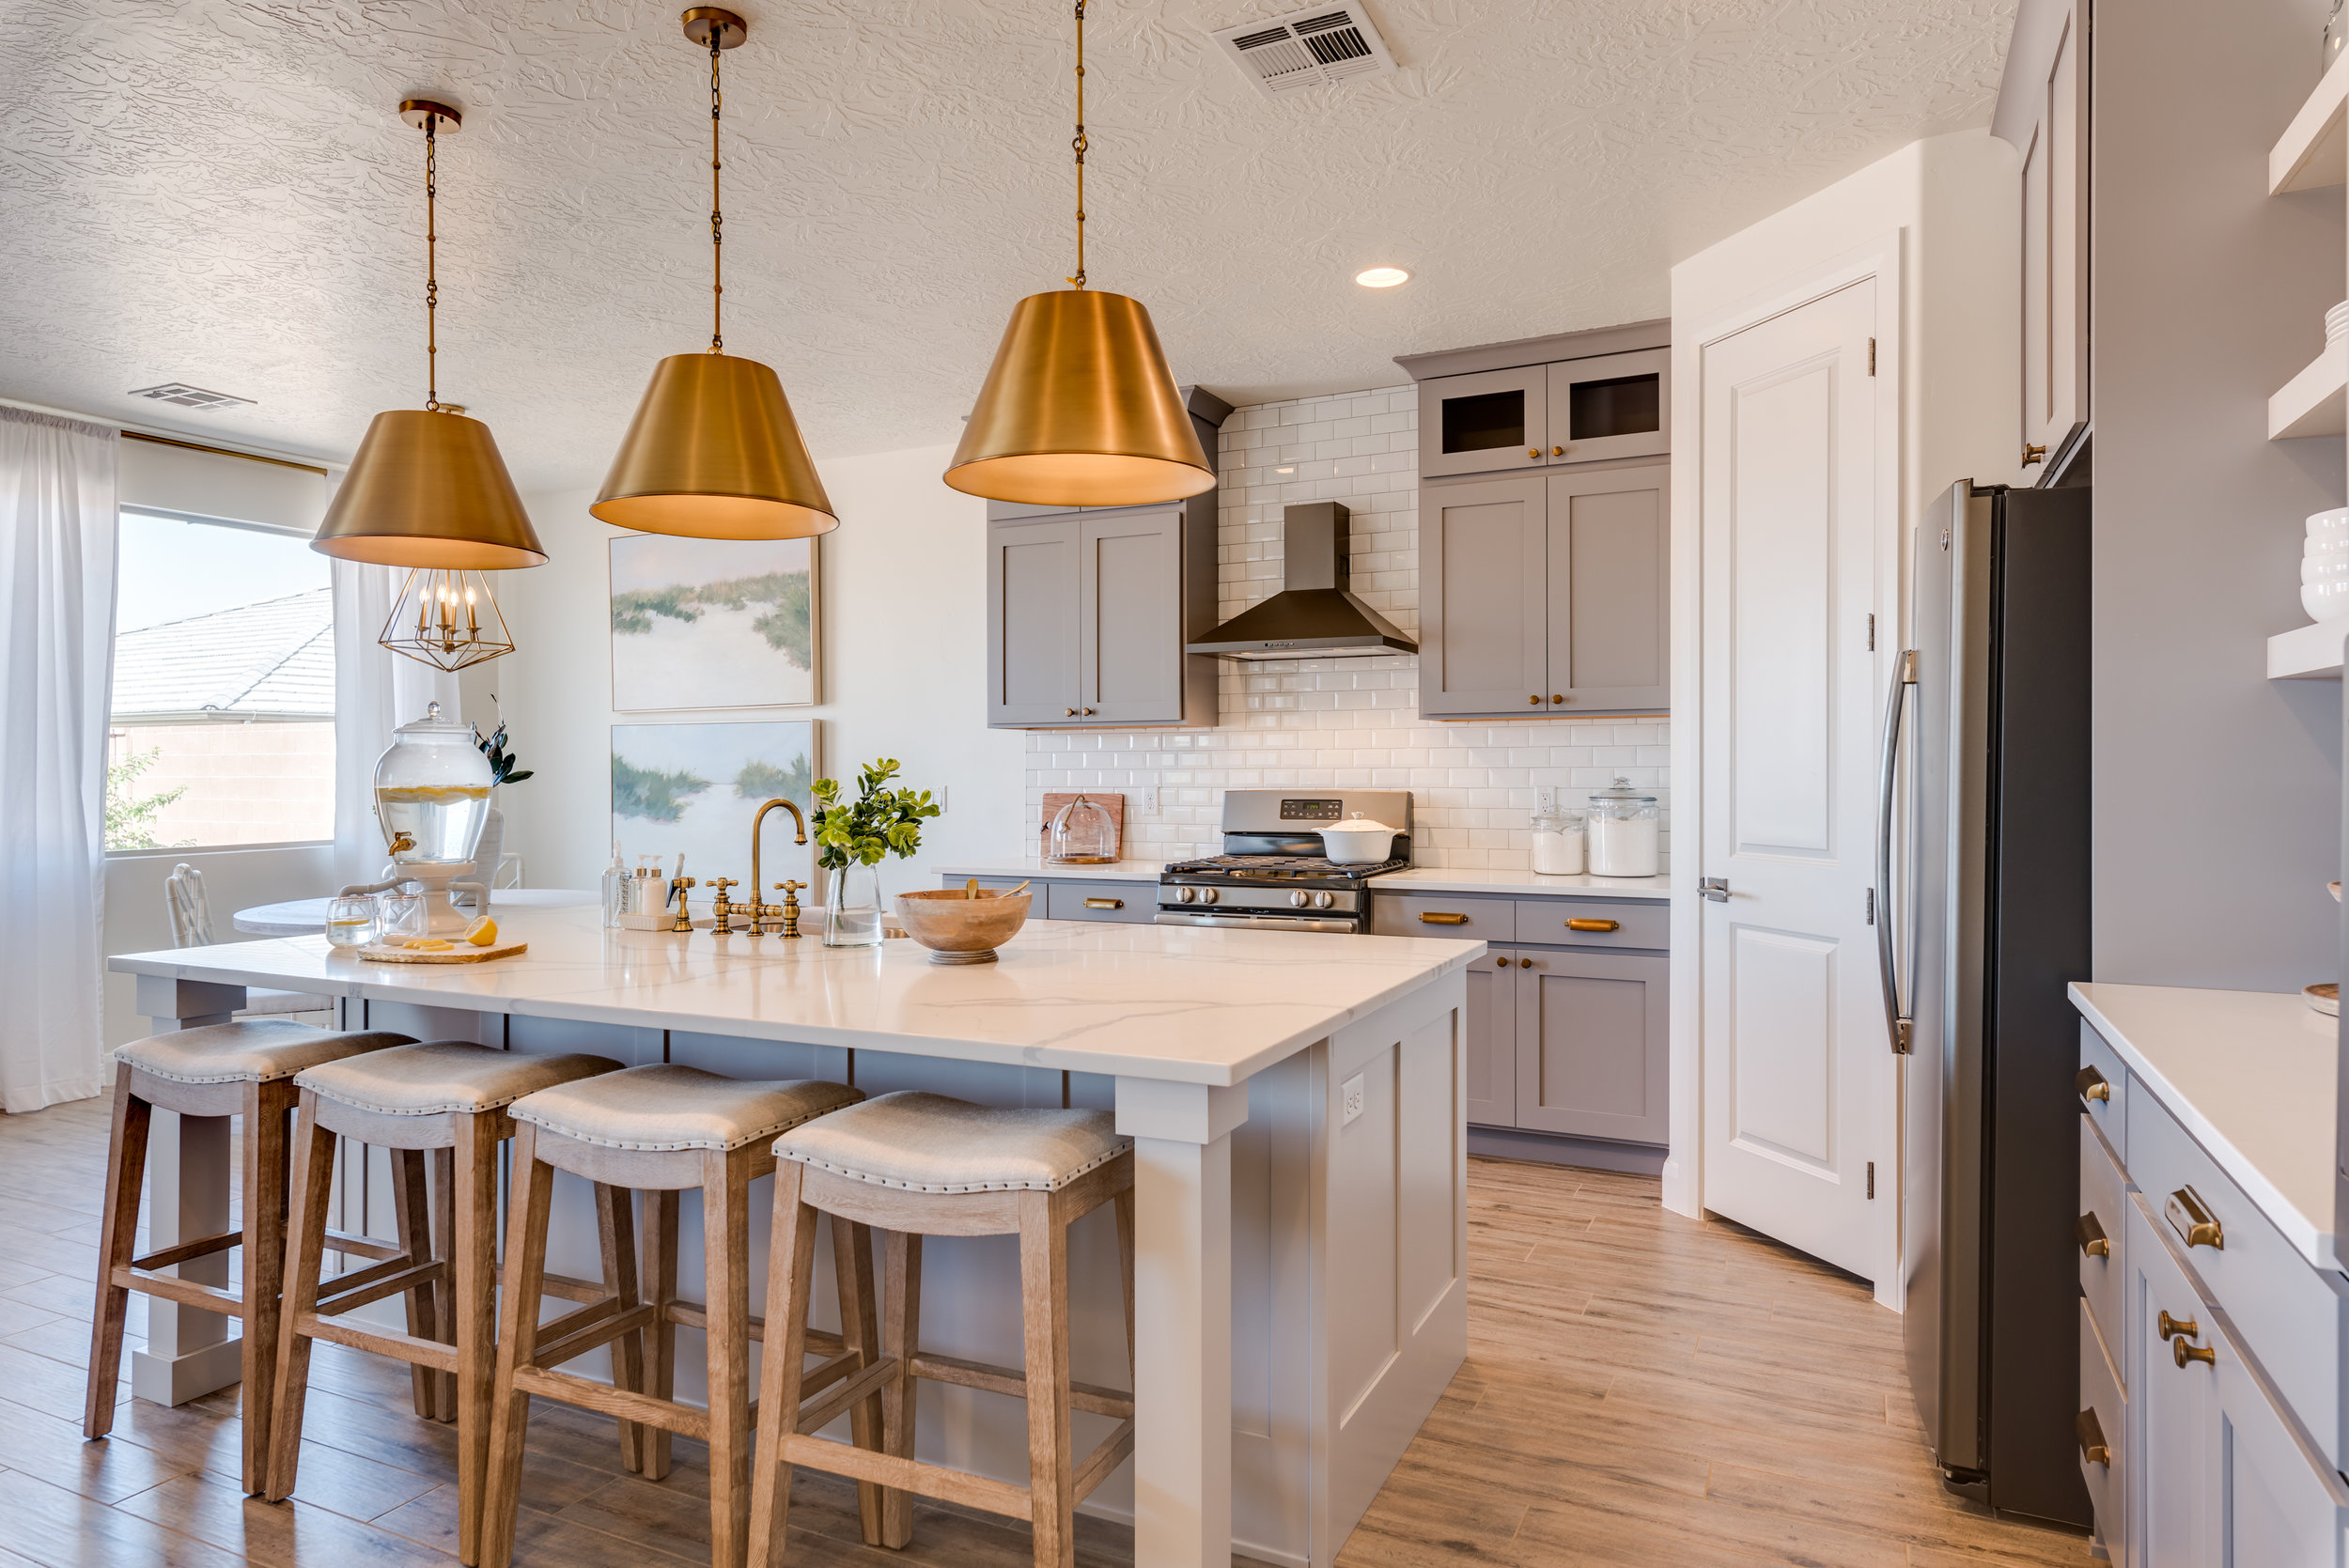 gray painted cabinets with brass accents